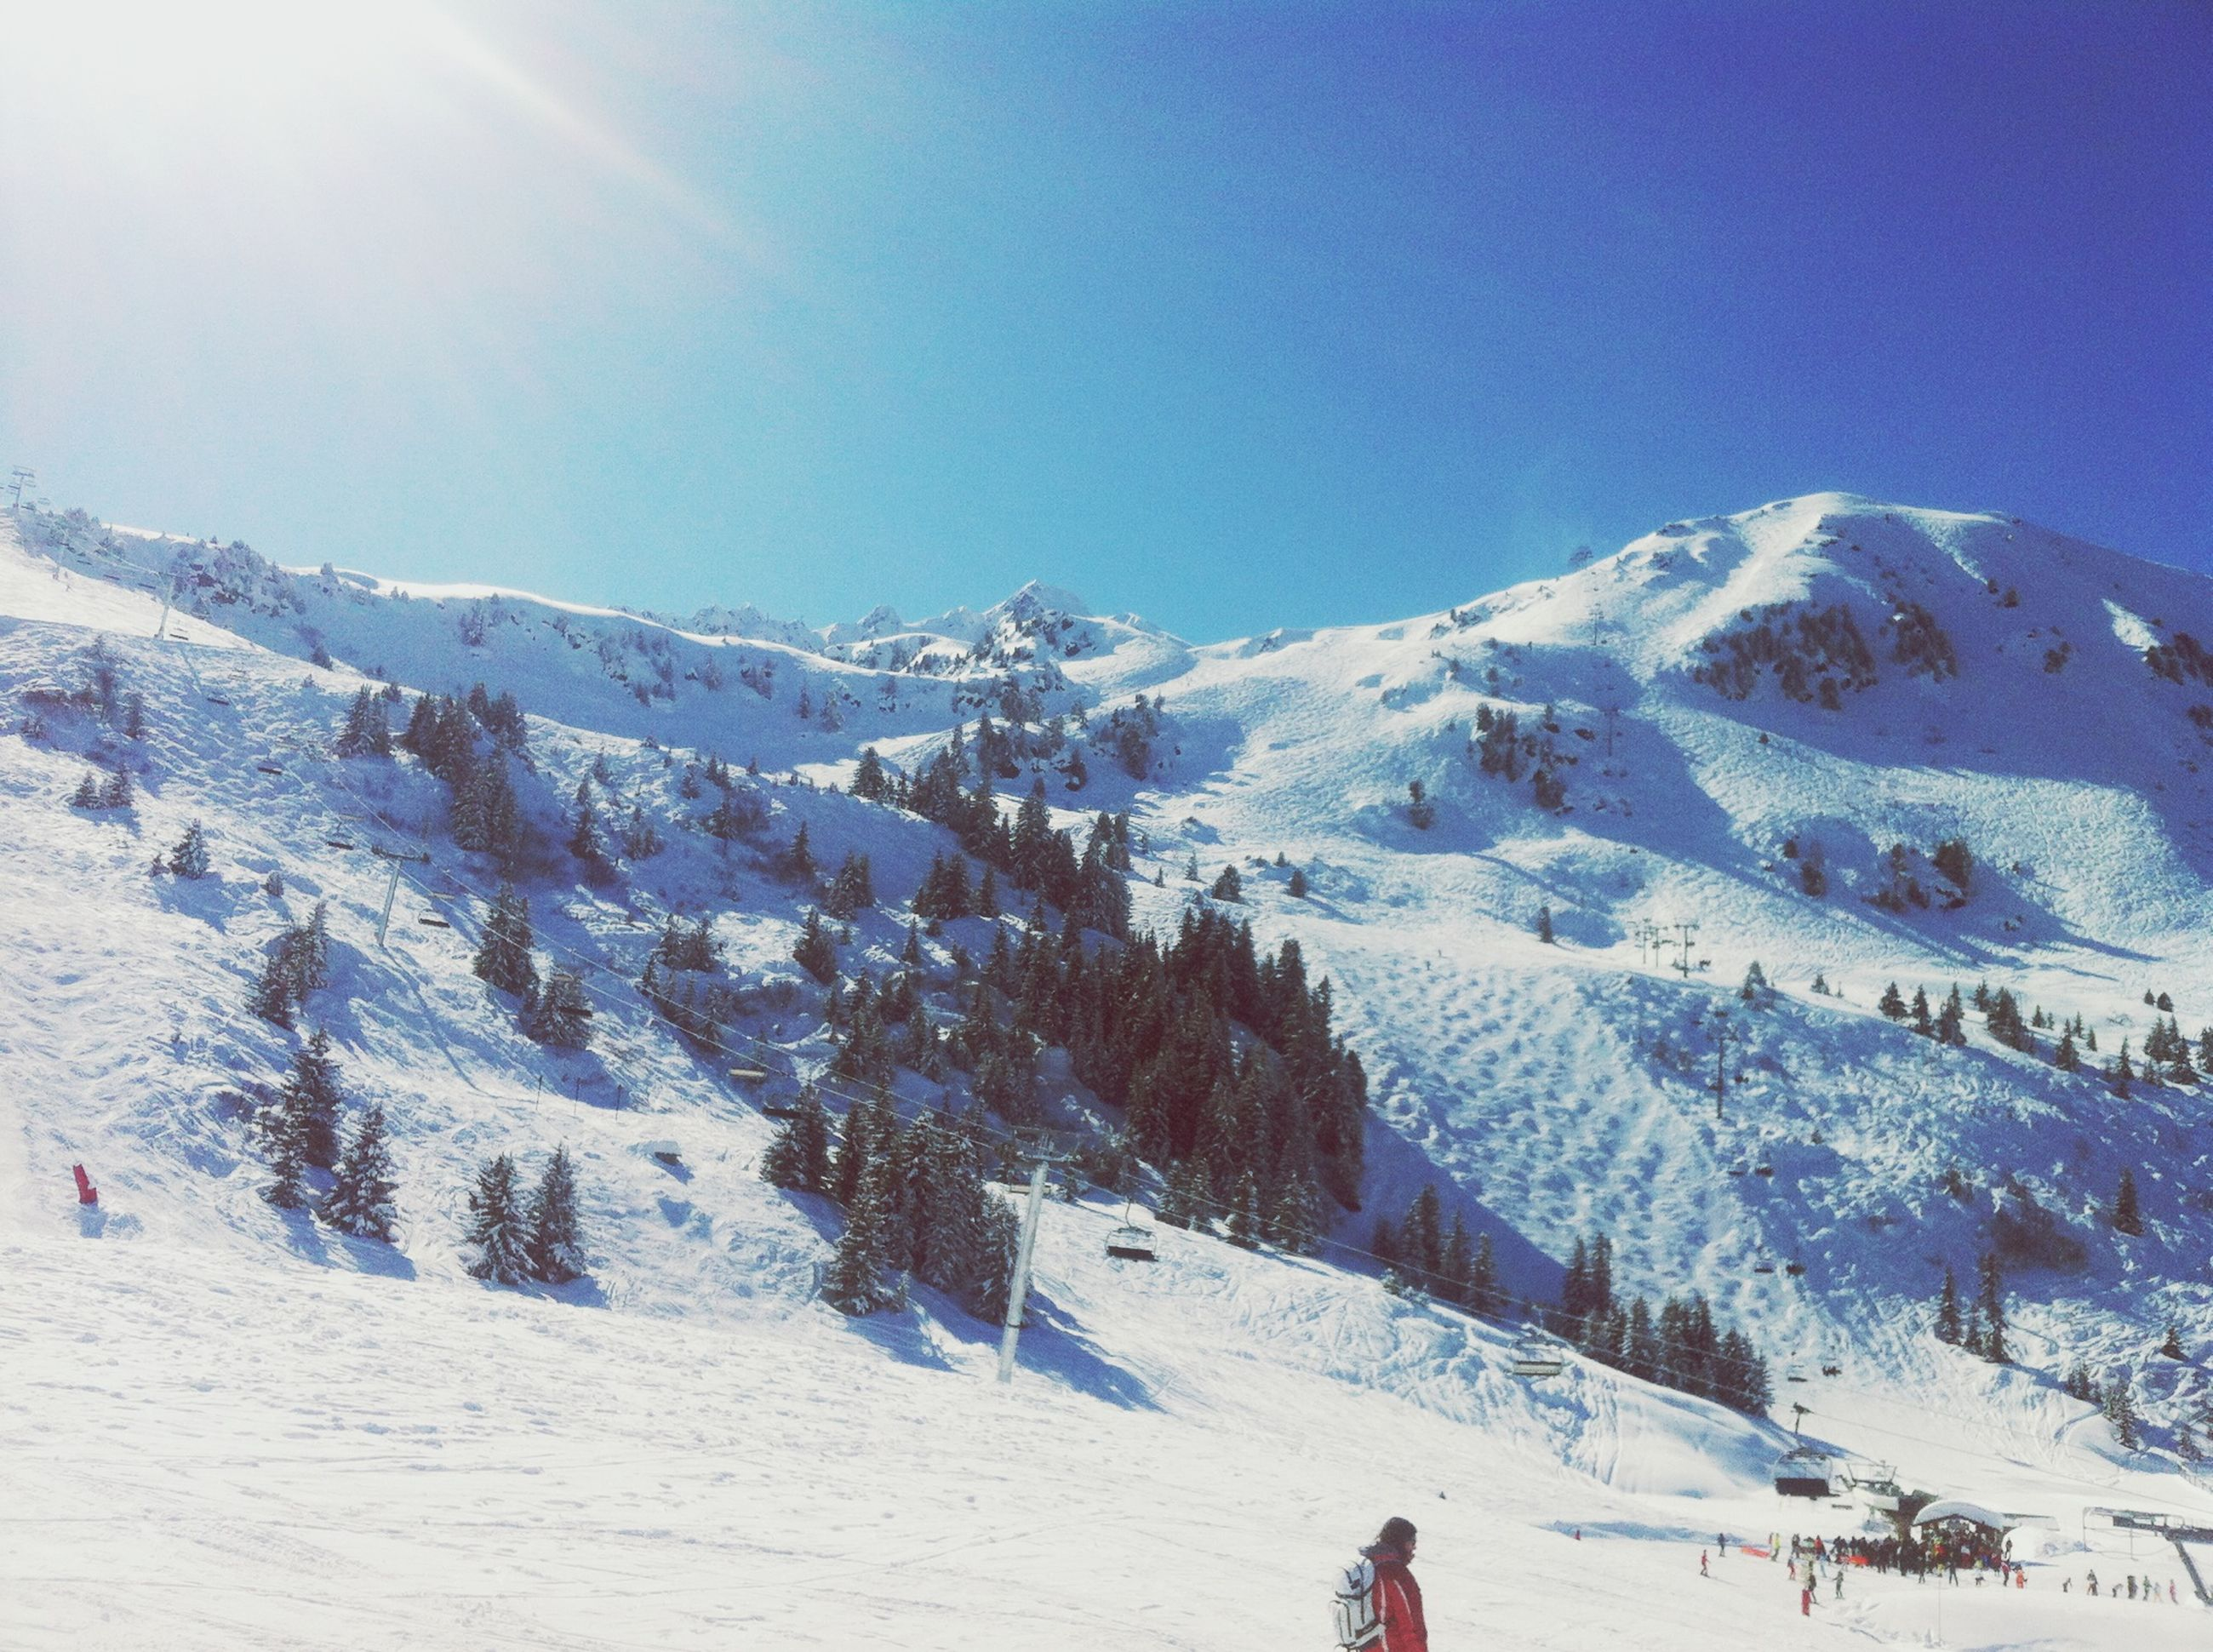 snow, winter, cold temperature, season, weather, mountain, covering, snowcapped mountain, tranquil scene, beauty in nature, clear sky, tranquility, landscape, scenics, frozen, nature, blue, white color, skiing